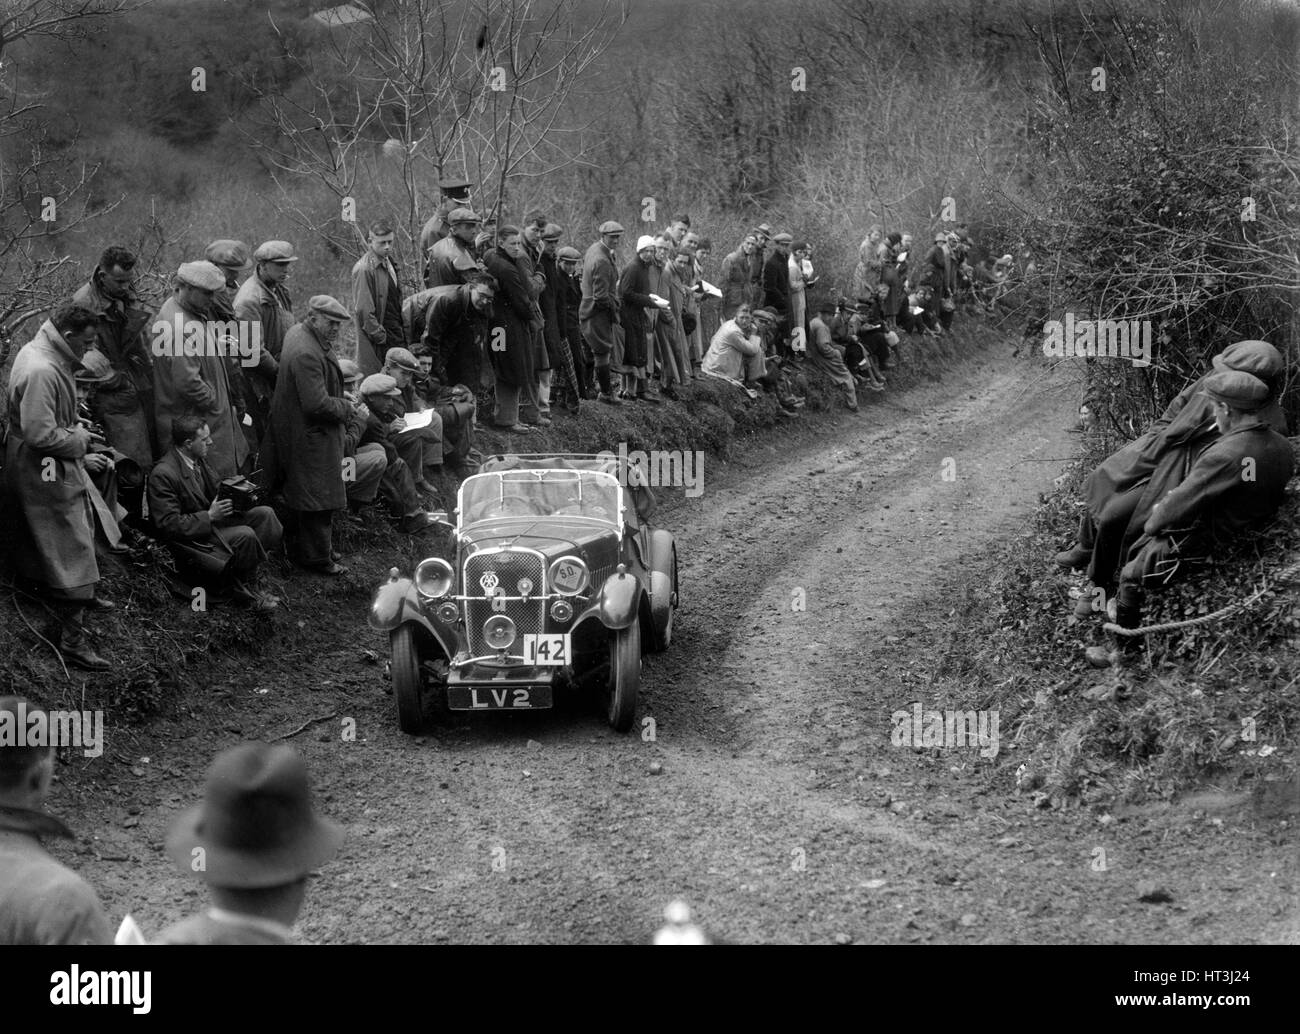 Singer Le Mans of HM Hutton competing in the MCC Lands End Trial, 1935. Artist: Bill Brunell. - Stock Image